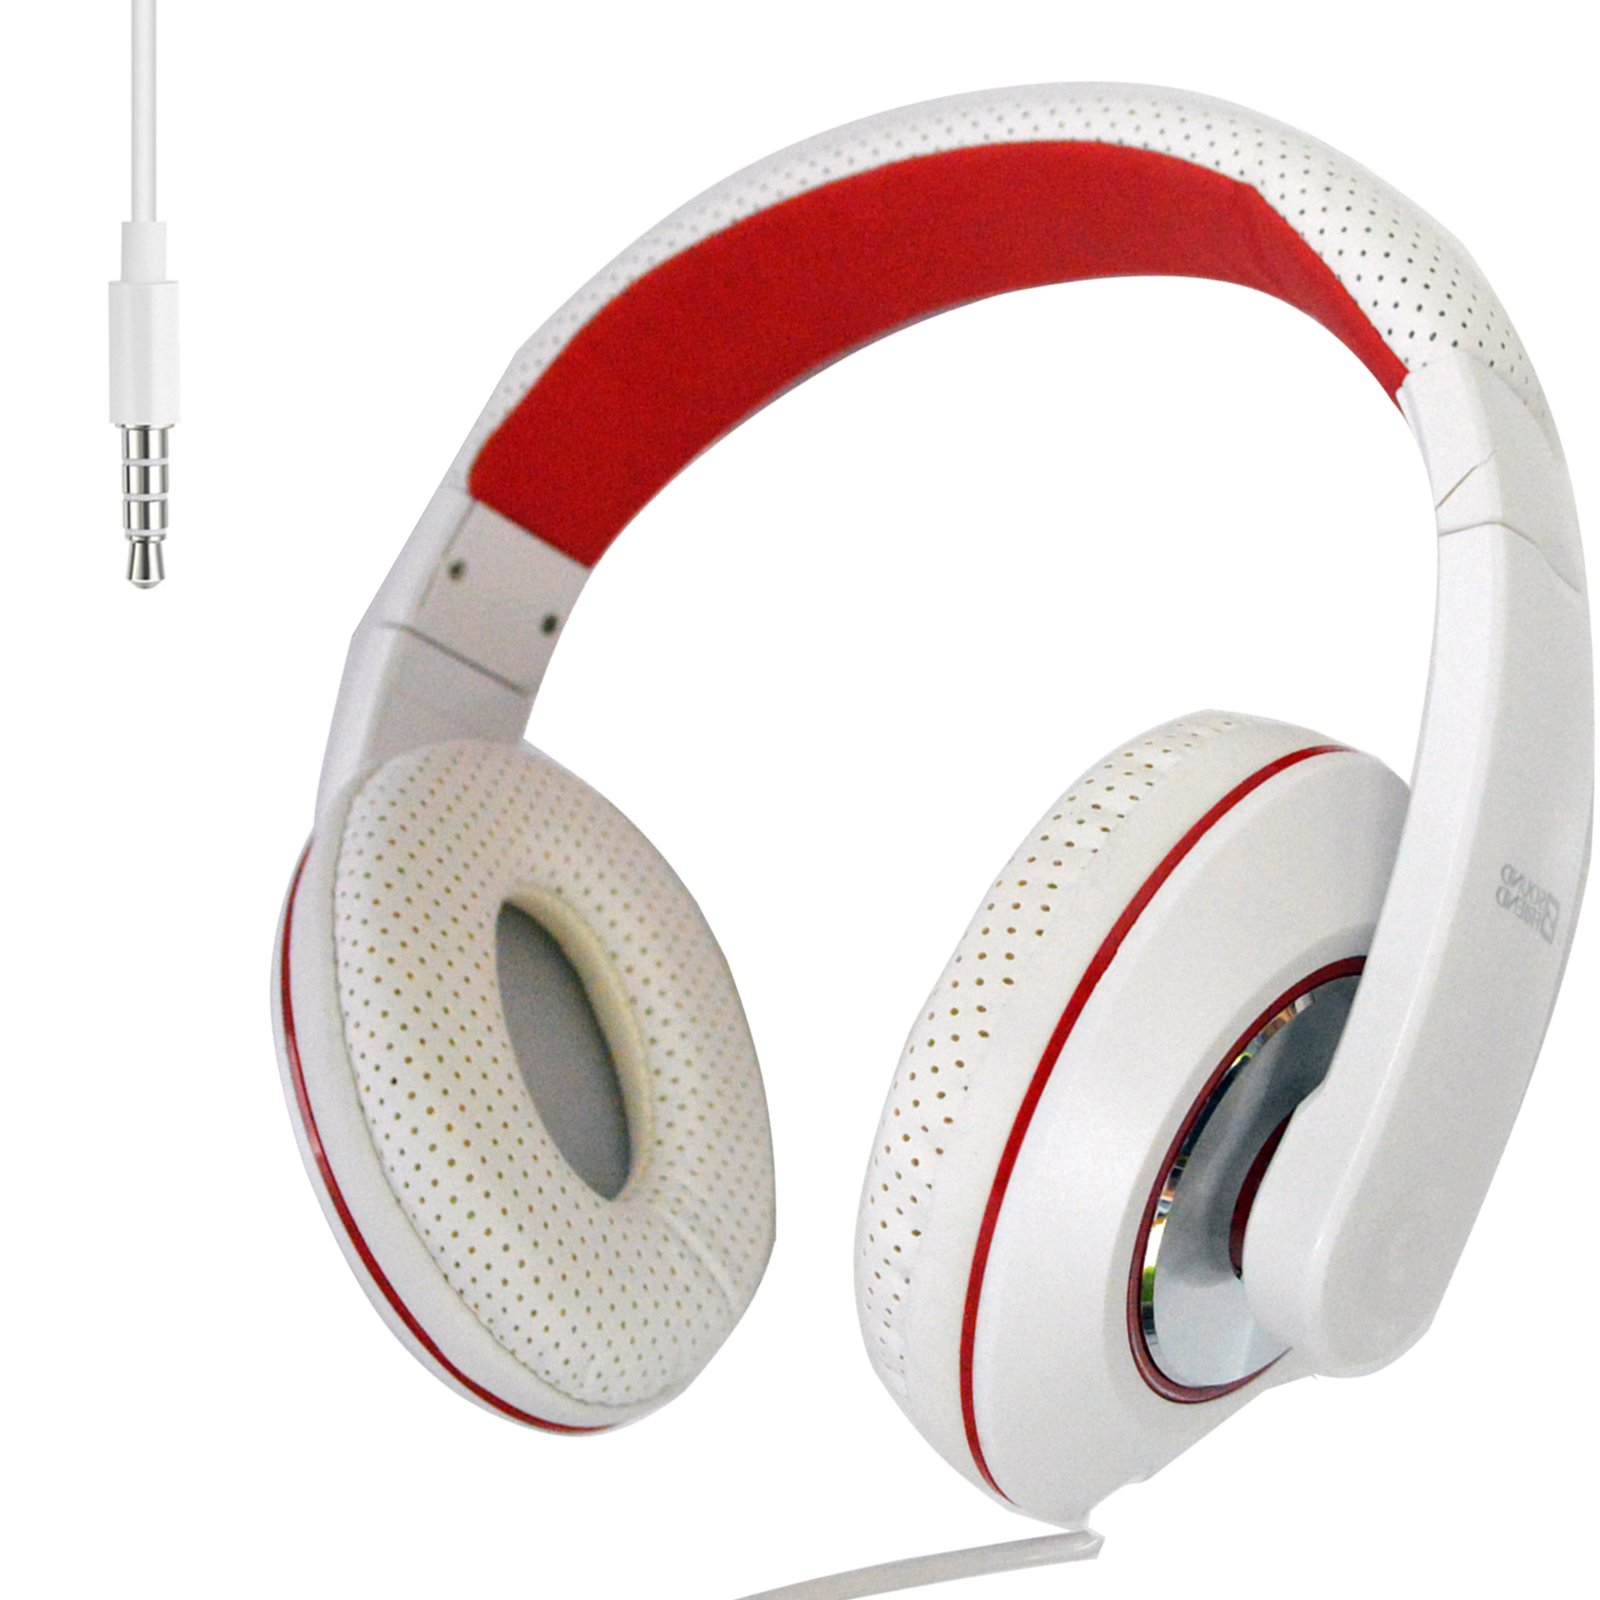 3.5mm Stereo Headband Headphone With Microphone for Cell Phone Laptop Tablets Computer PC MP3/4